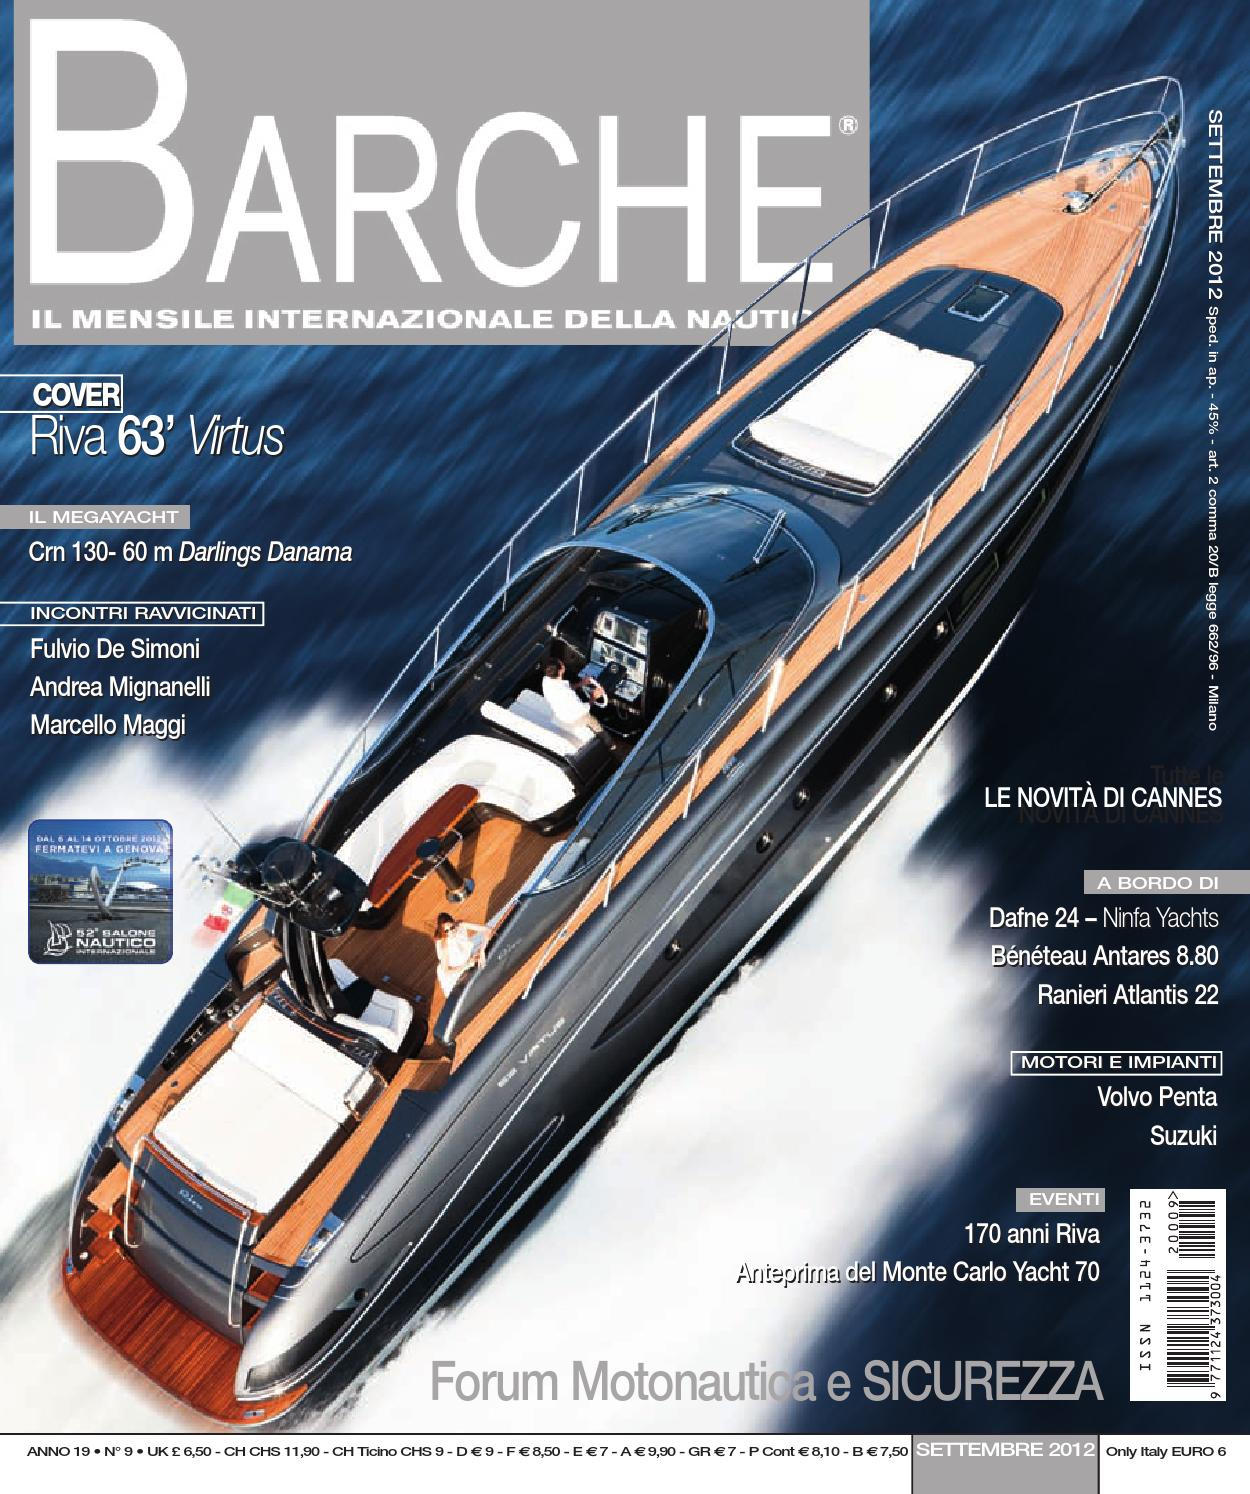 BARCHE September 2012 by INTERNATIONAL SEA PRESS SRL - BARCHE - issuu 24d75d26f26